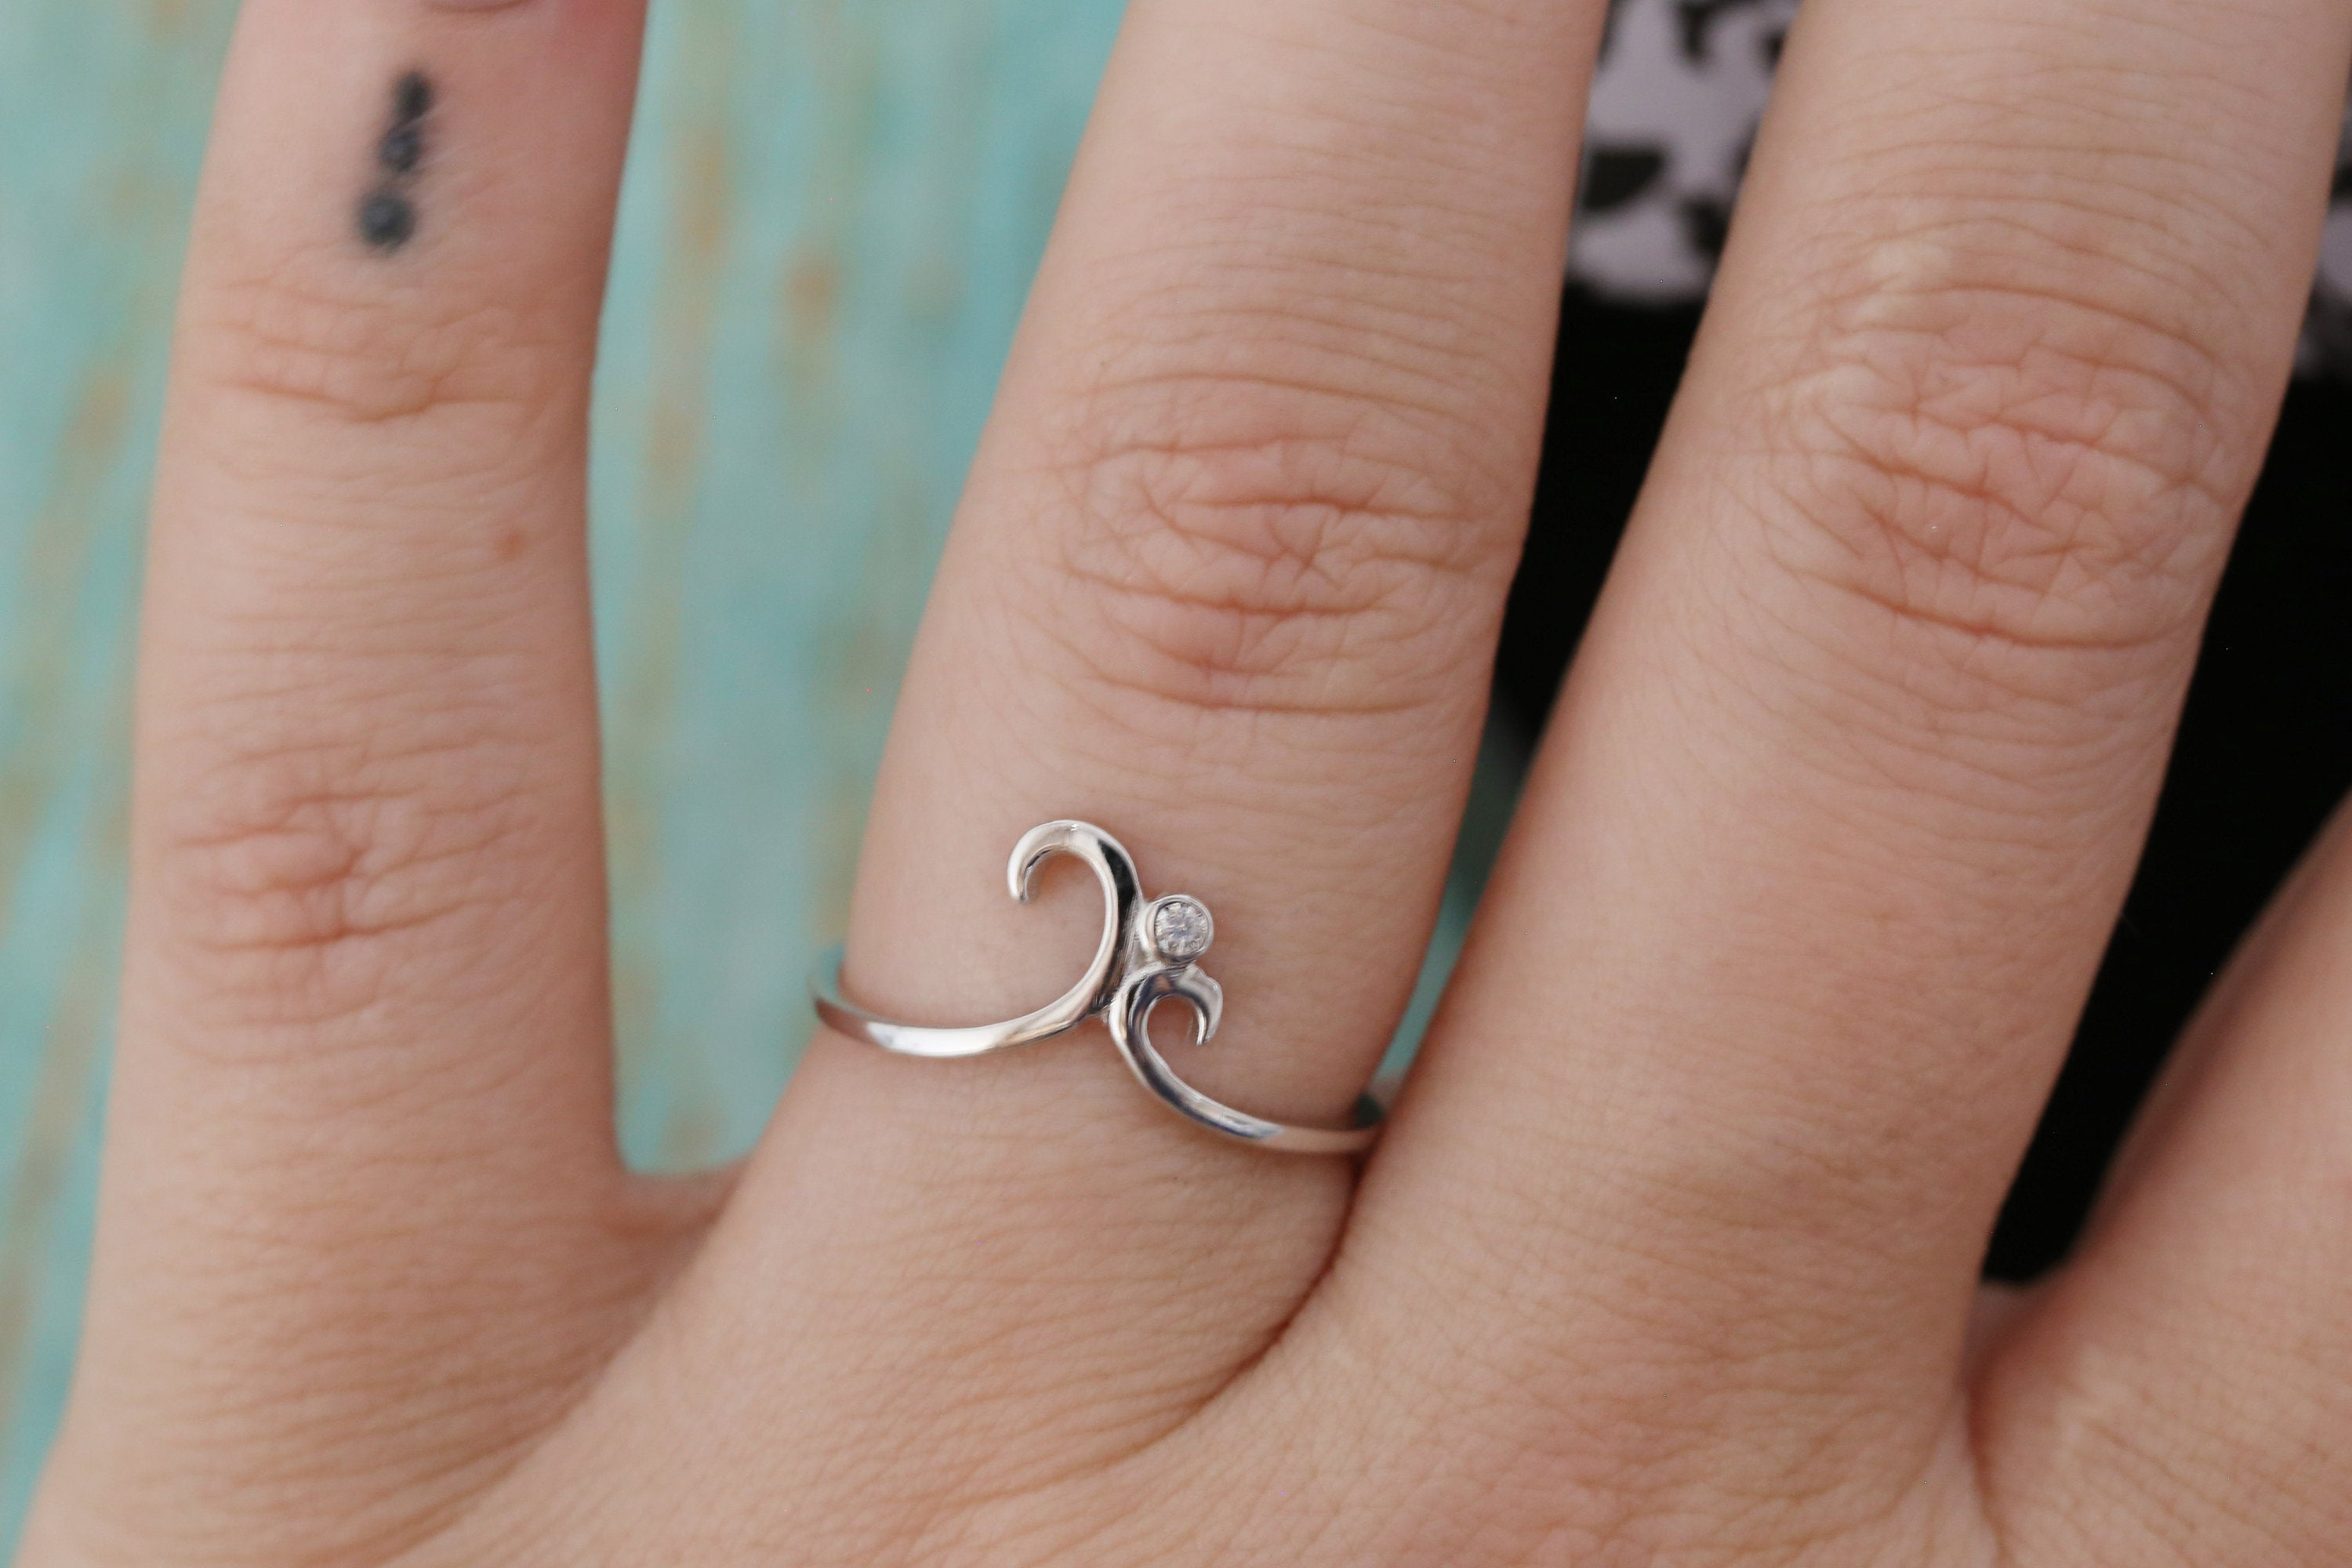 Cremation Ring - Sterling Silver Dainty Swirl Ring - Cremation Jewelry - Ash Ring - Ash Jewelry - Urn Ring - Minimalist Ring - Pet Loss